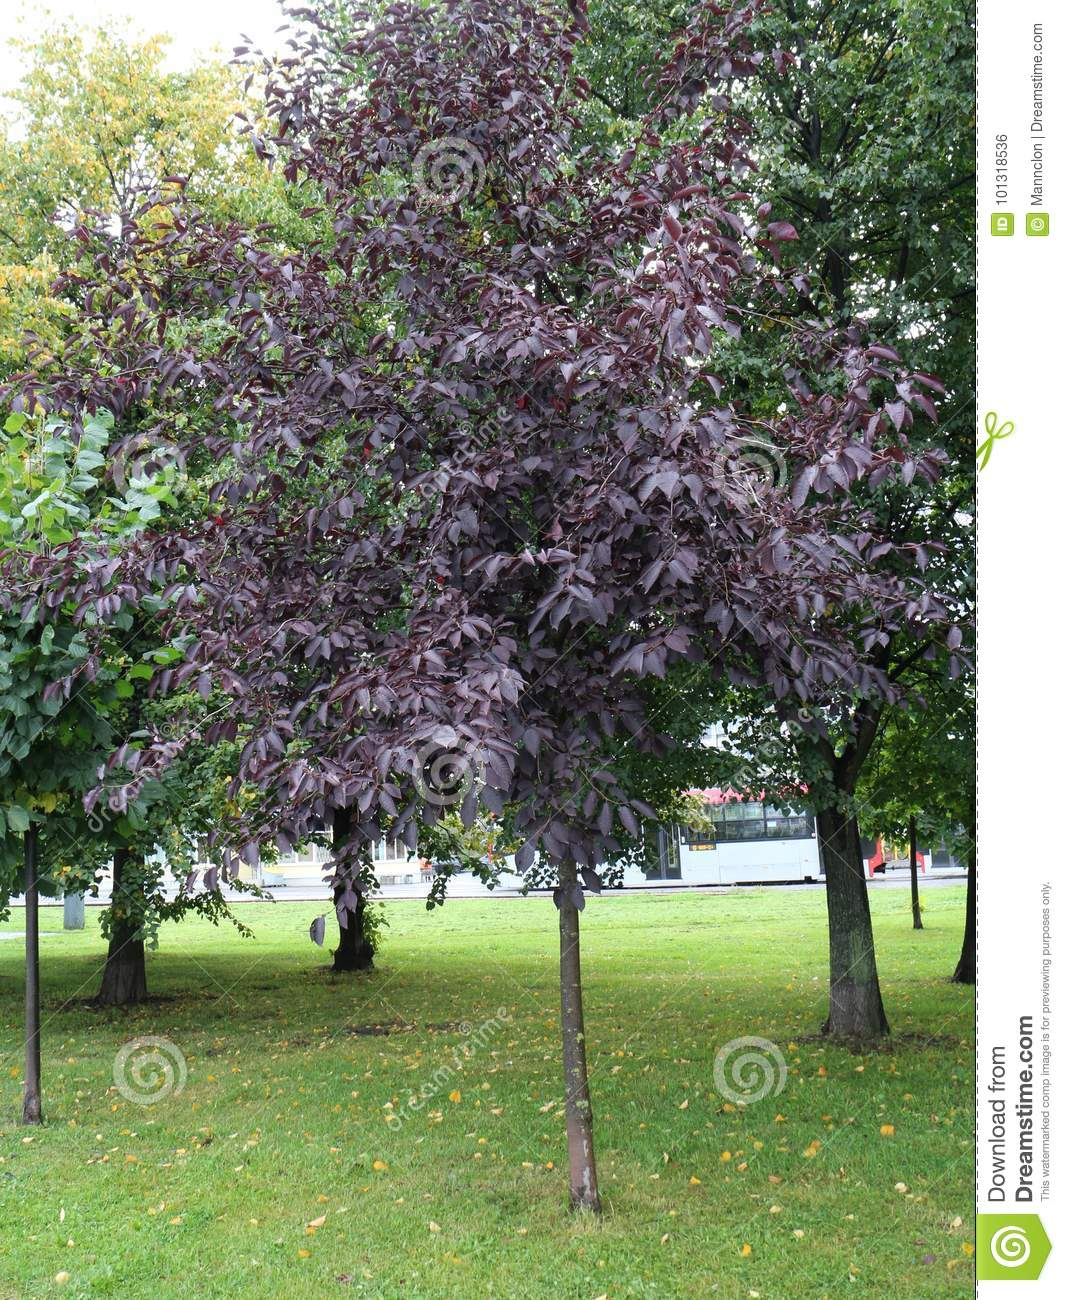 Tree With Burgundy Leaves Stock Photo Image Of Plant 101318536